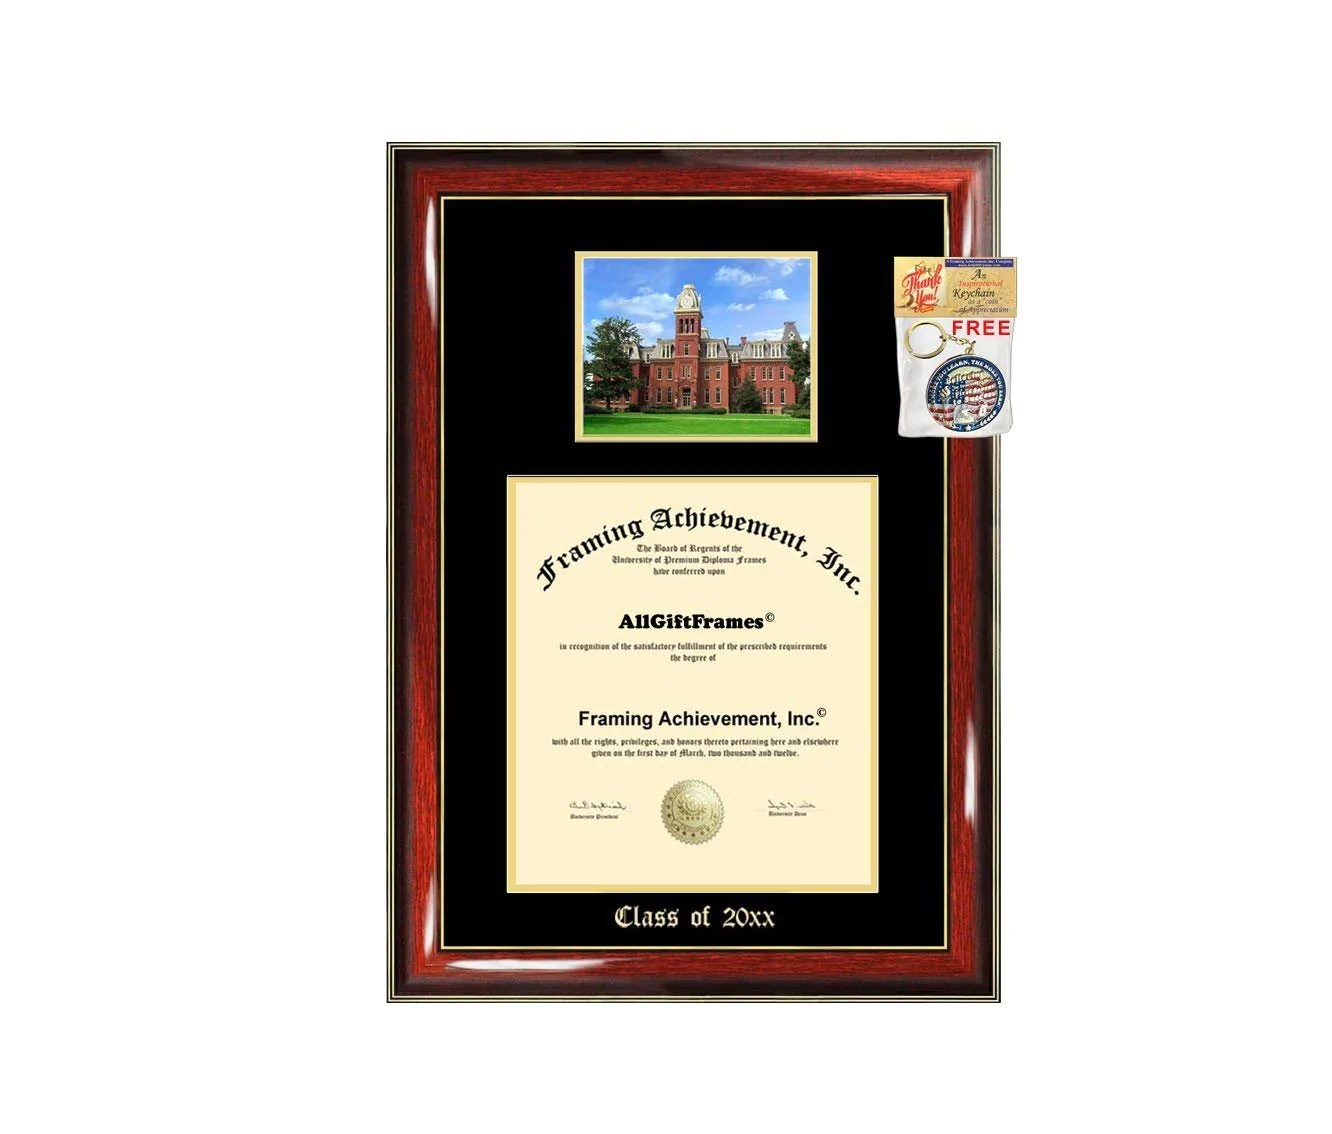 Large Frame Mat Wvu Diploma Frame Big West Virginia University School Campus Photo Graduation Degree Double Mat Framing Document Graduation Gift Bachelor Master Mba